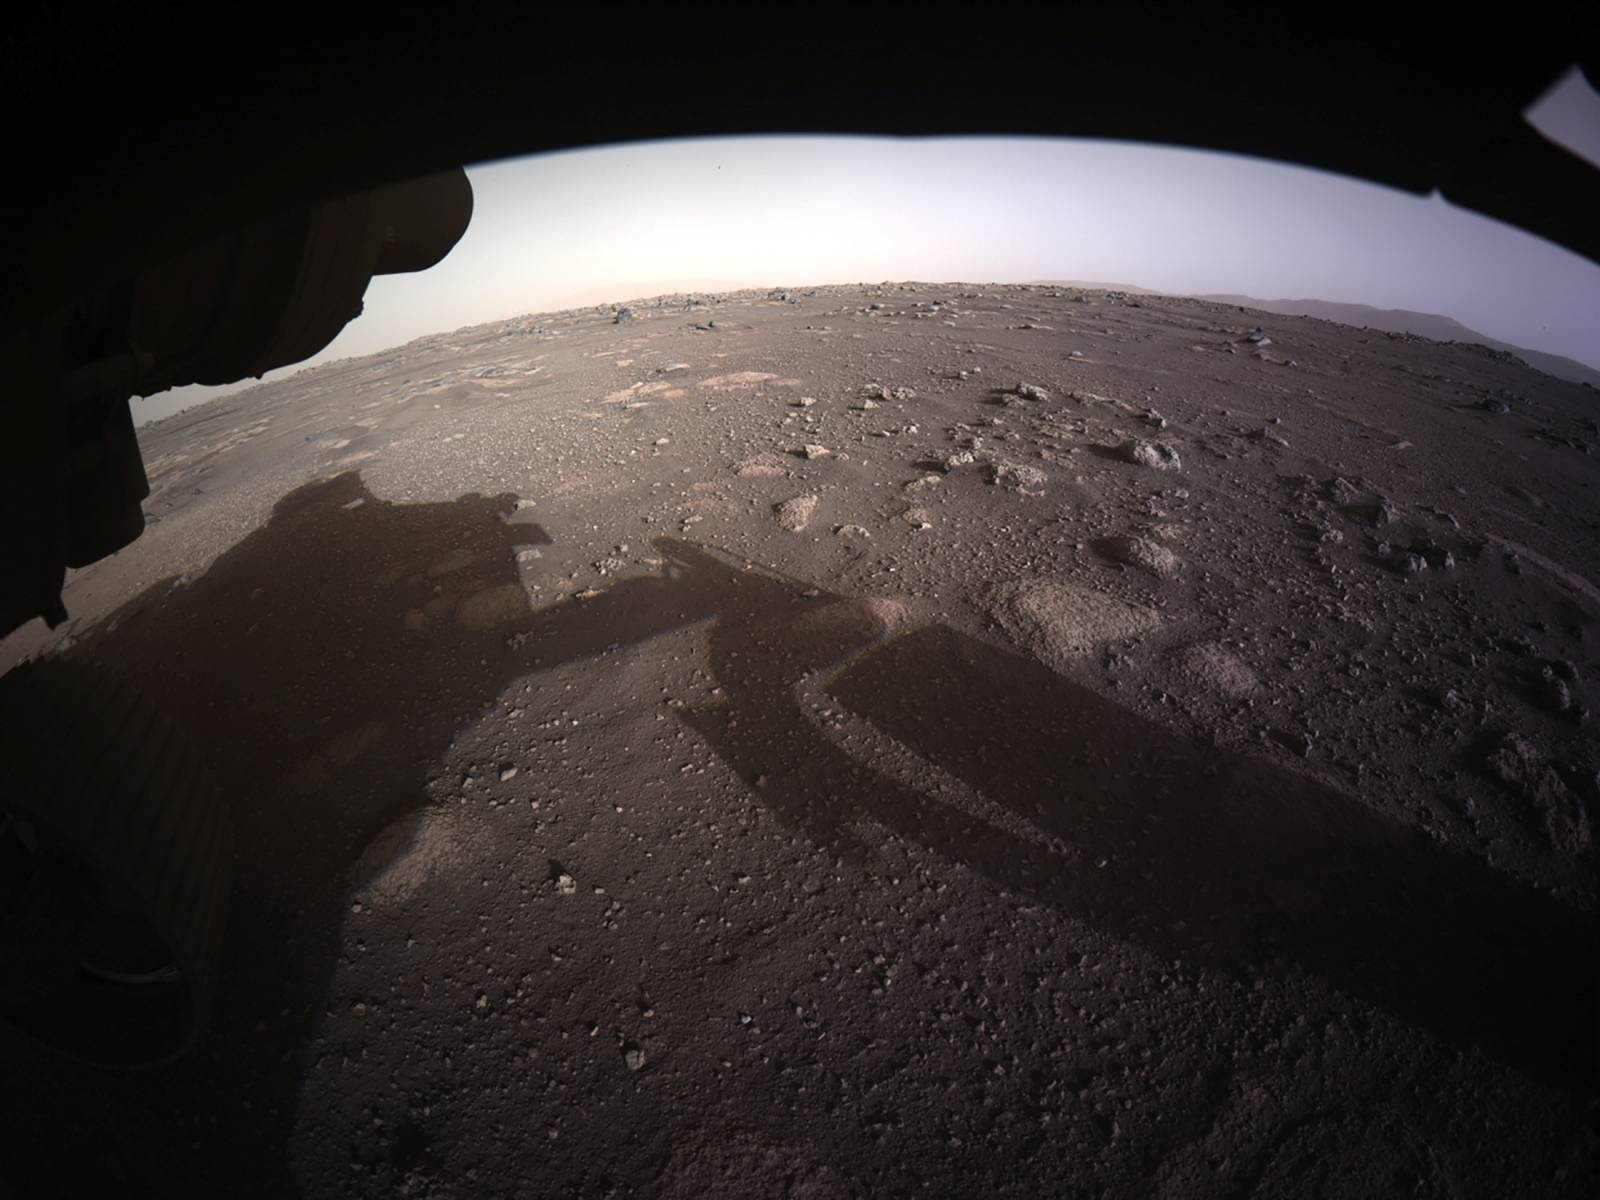 The first high-resolution, color image to be sent back by the Hazard Cameras (Hazcams) on the underside of NASA's Perseverance Mars rover